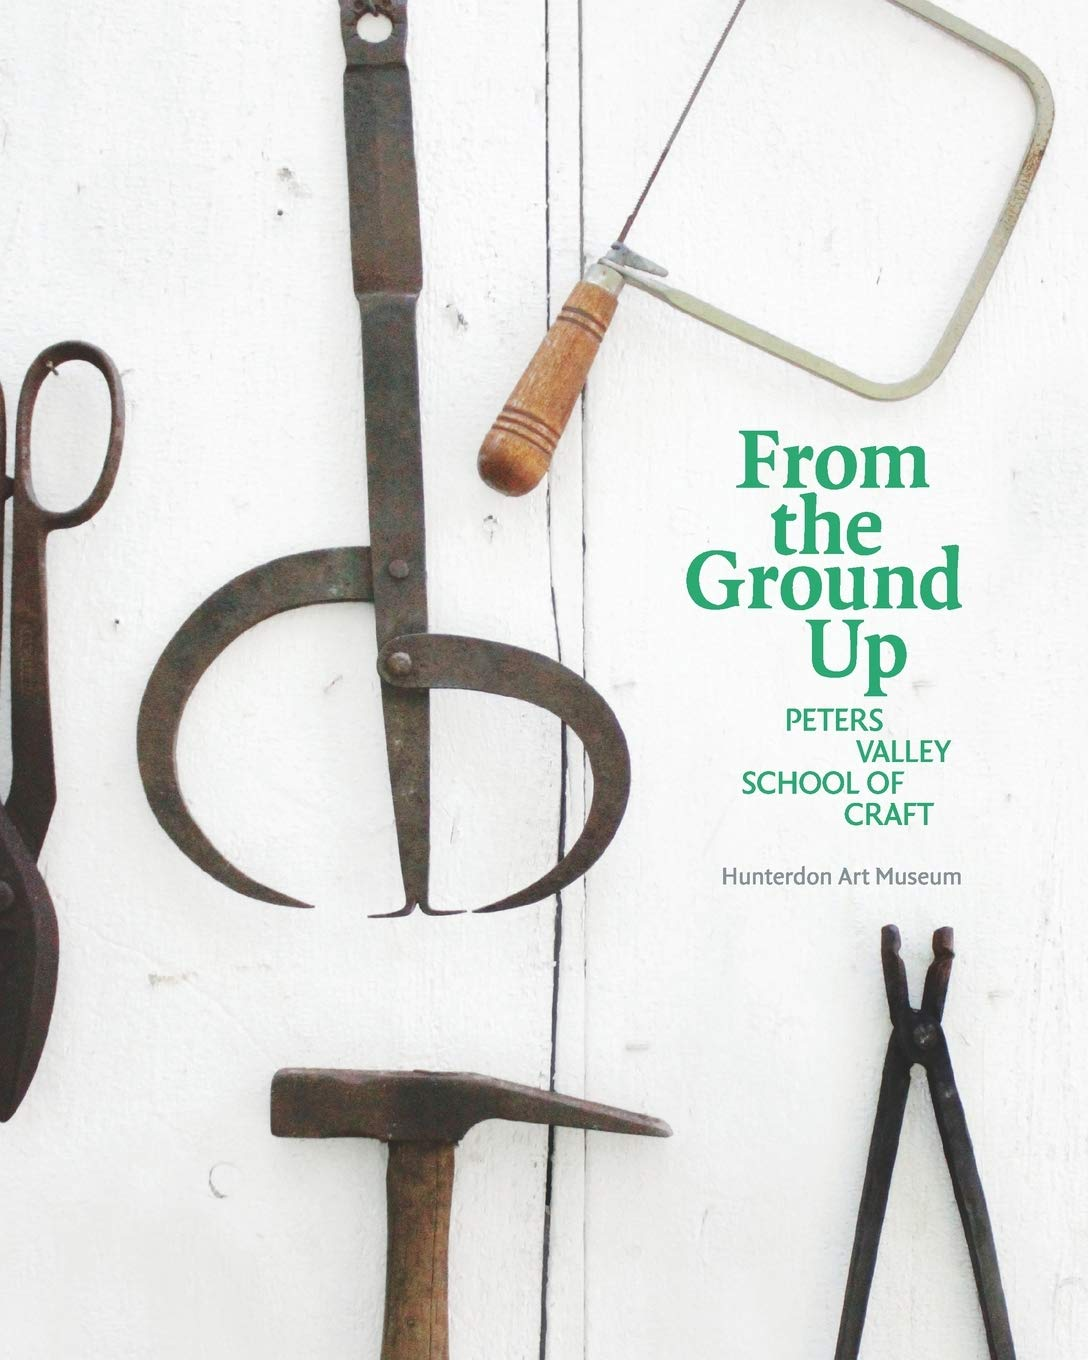 """From the Ground Up: Peters Valley School of Craft"" Exhibition Catalog"